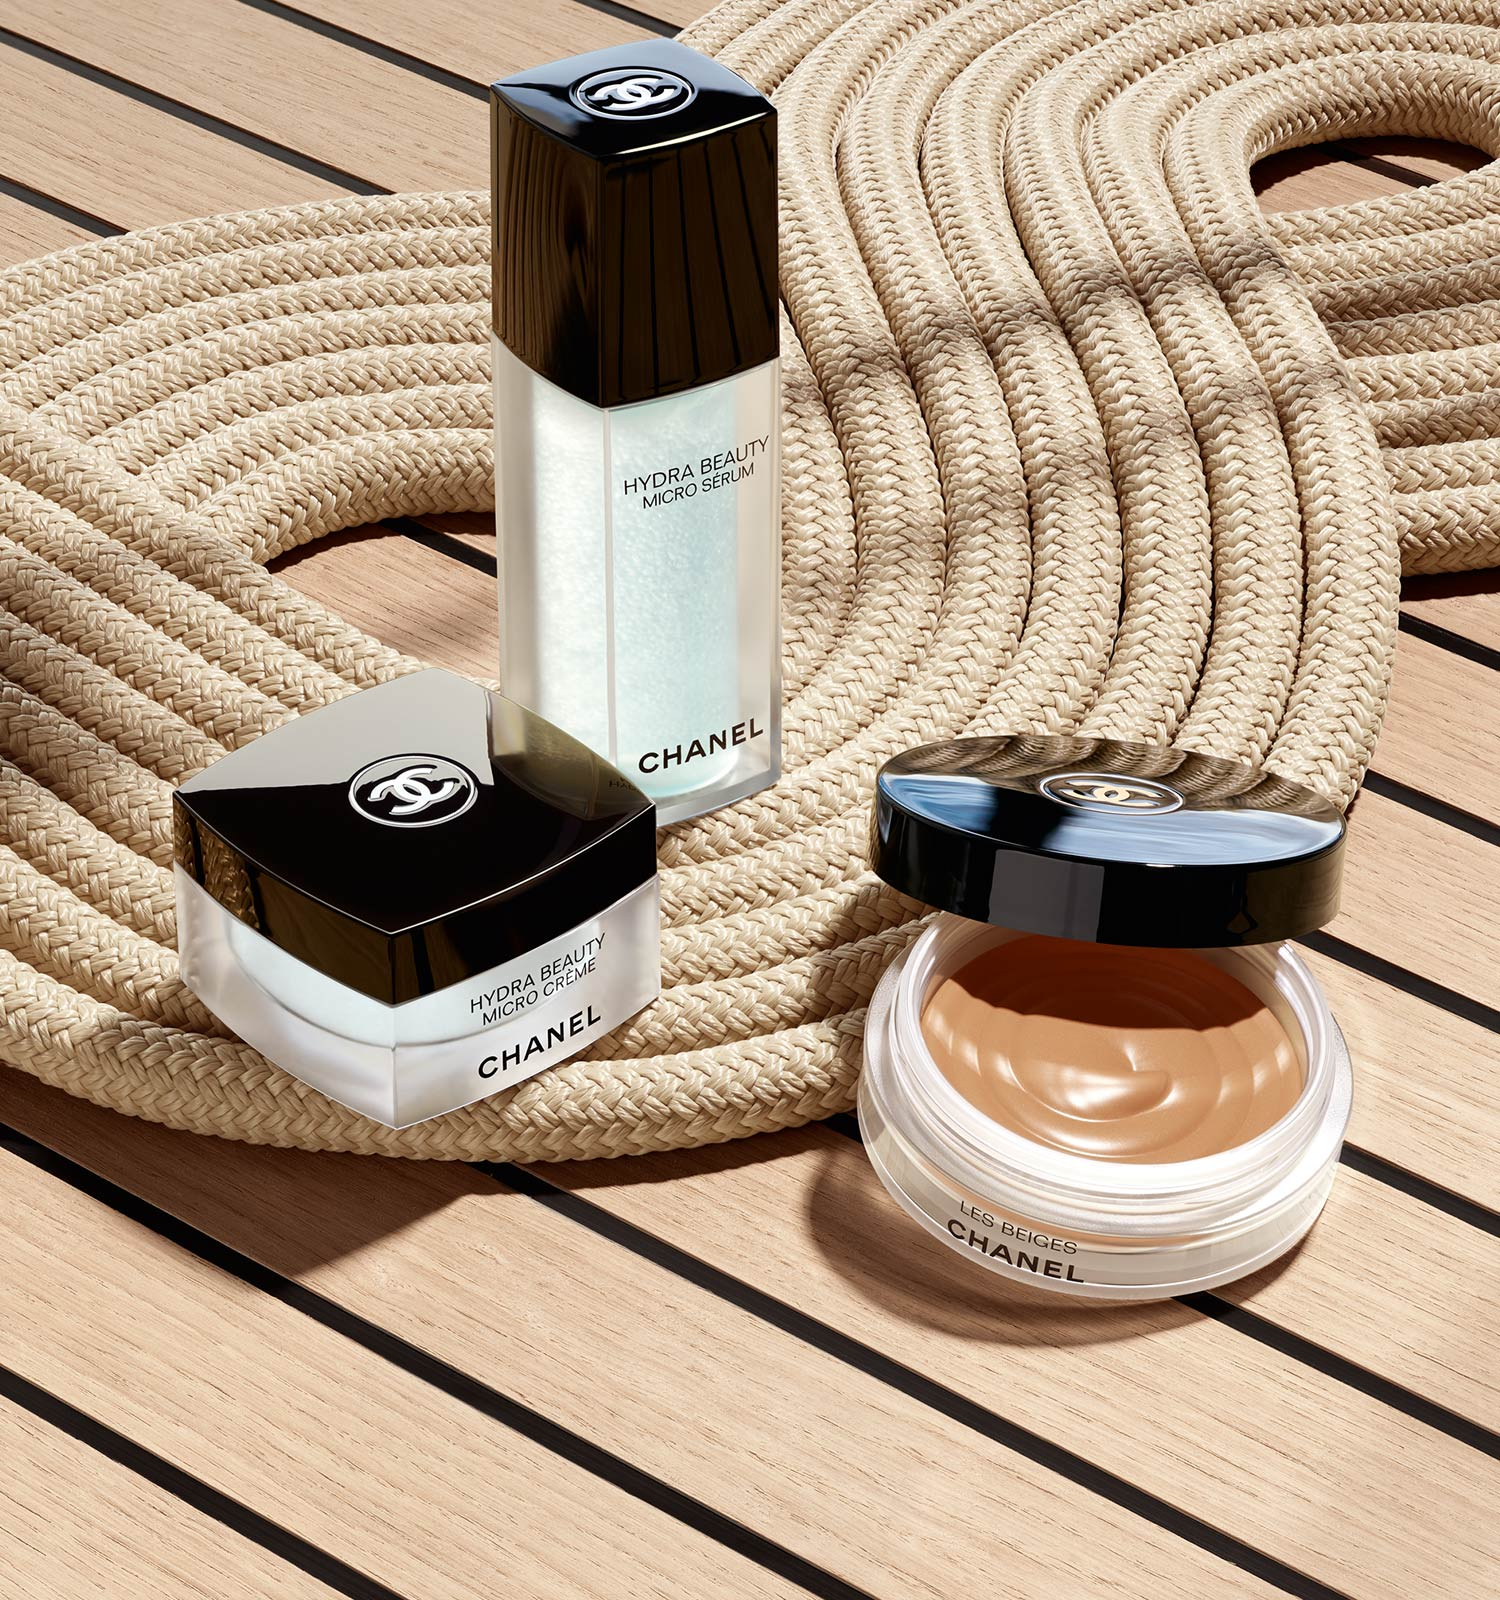 Hydra Beauty - CHANEL